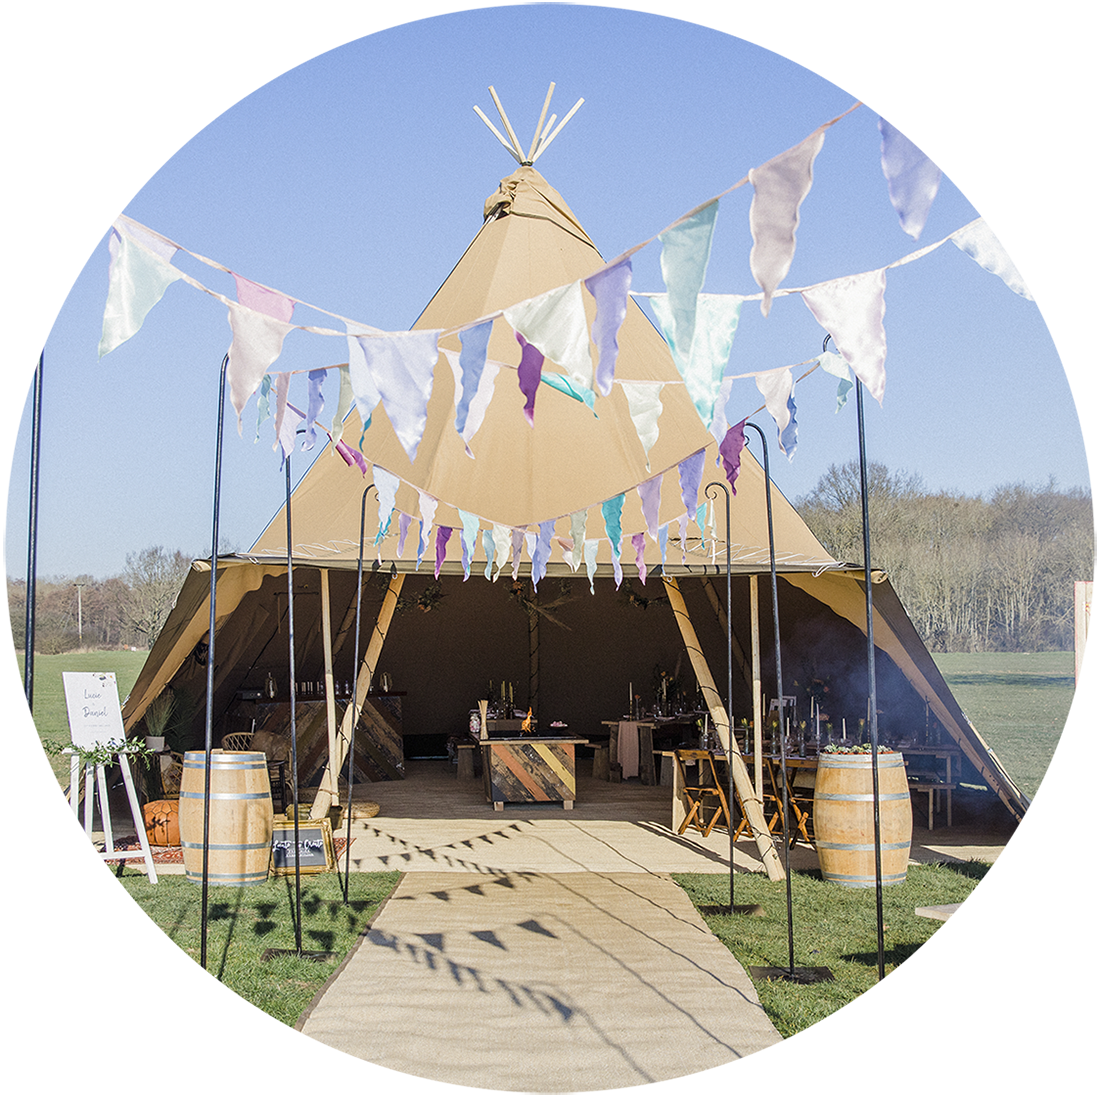 Giant Tipi Weddings Kent, London, Surrey, Essex, East Sussex, West Sussex